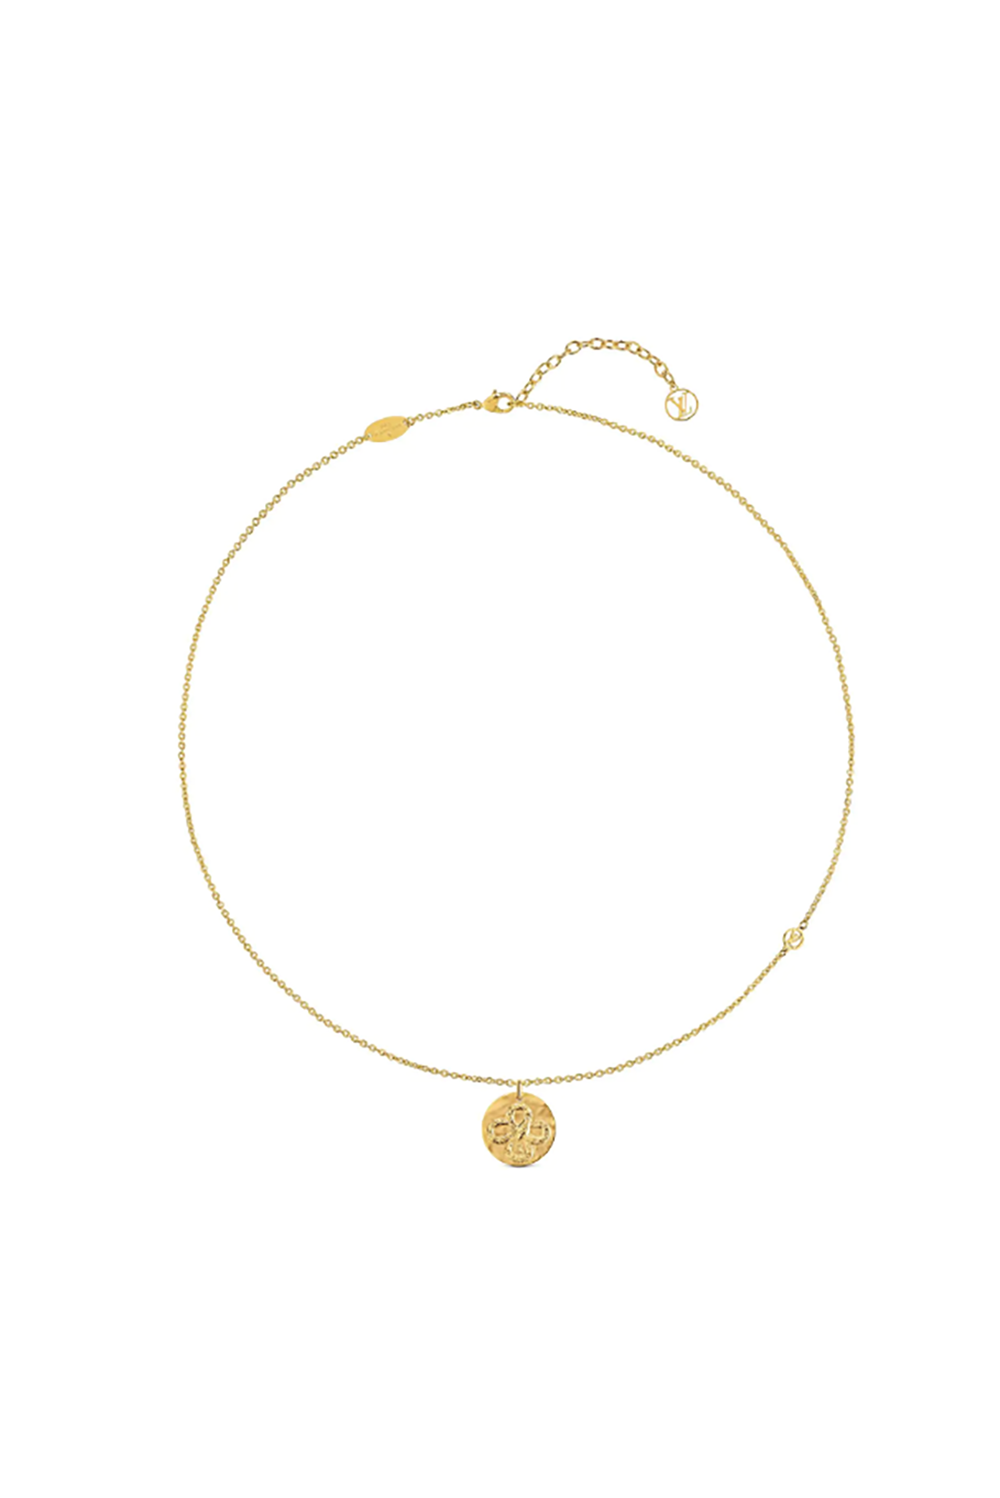 Louis In the Sky Zodiac Necklace M65173 Louis Vuitton $365.00 SHOP IT Any luxury-loving Taurus will cherish this dainty Louis Vuitton gold necklace, which includes an animal from the Chinese Zodiac and, of course, the signature LV initials.